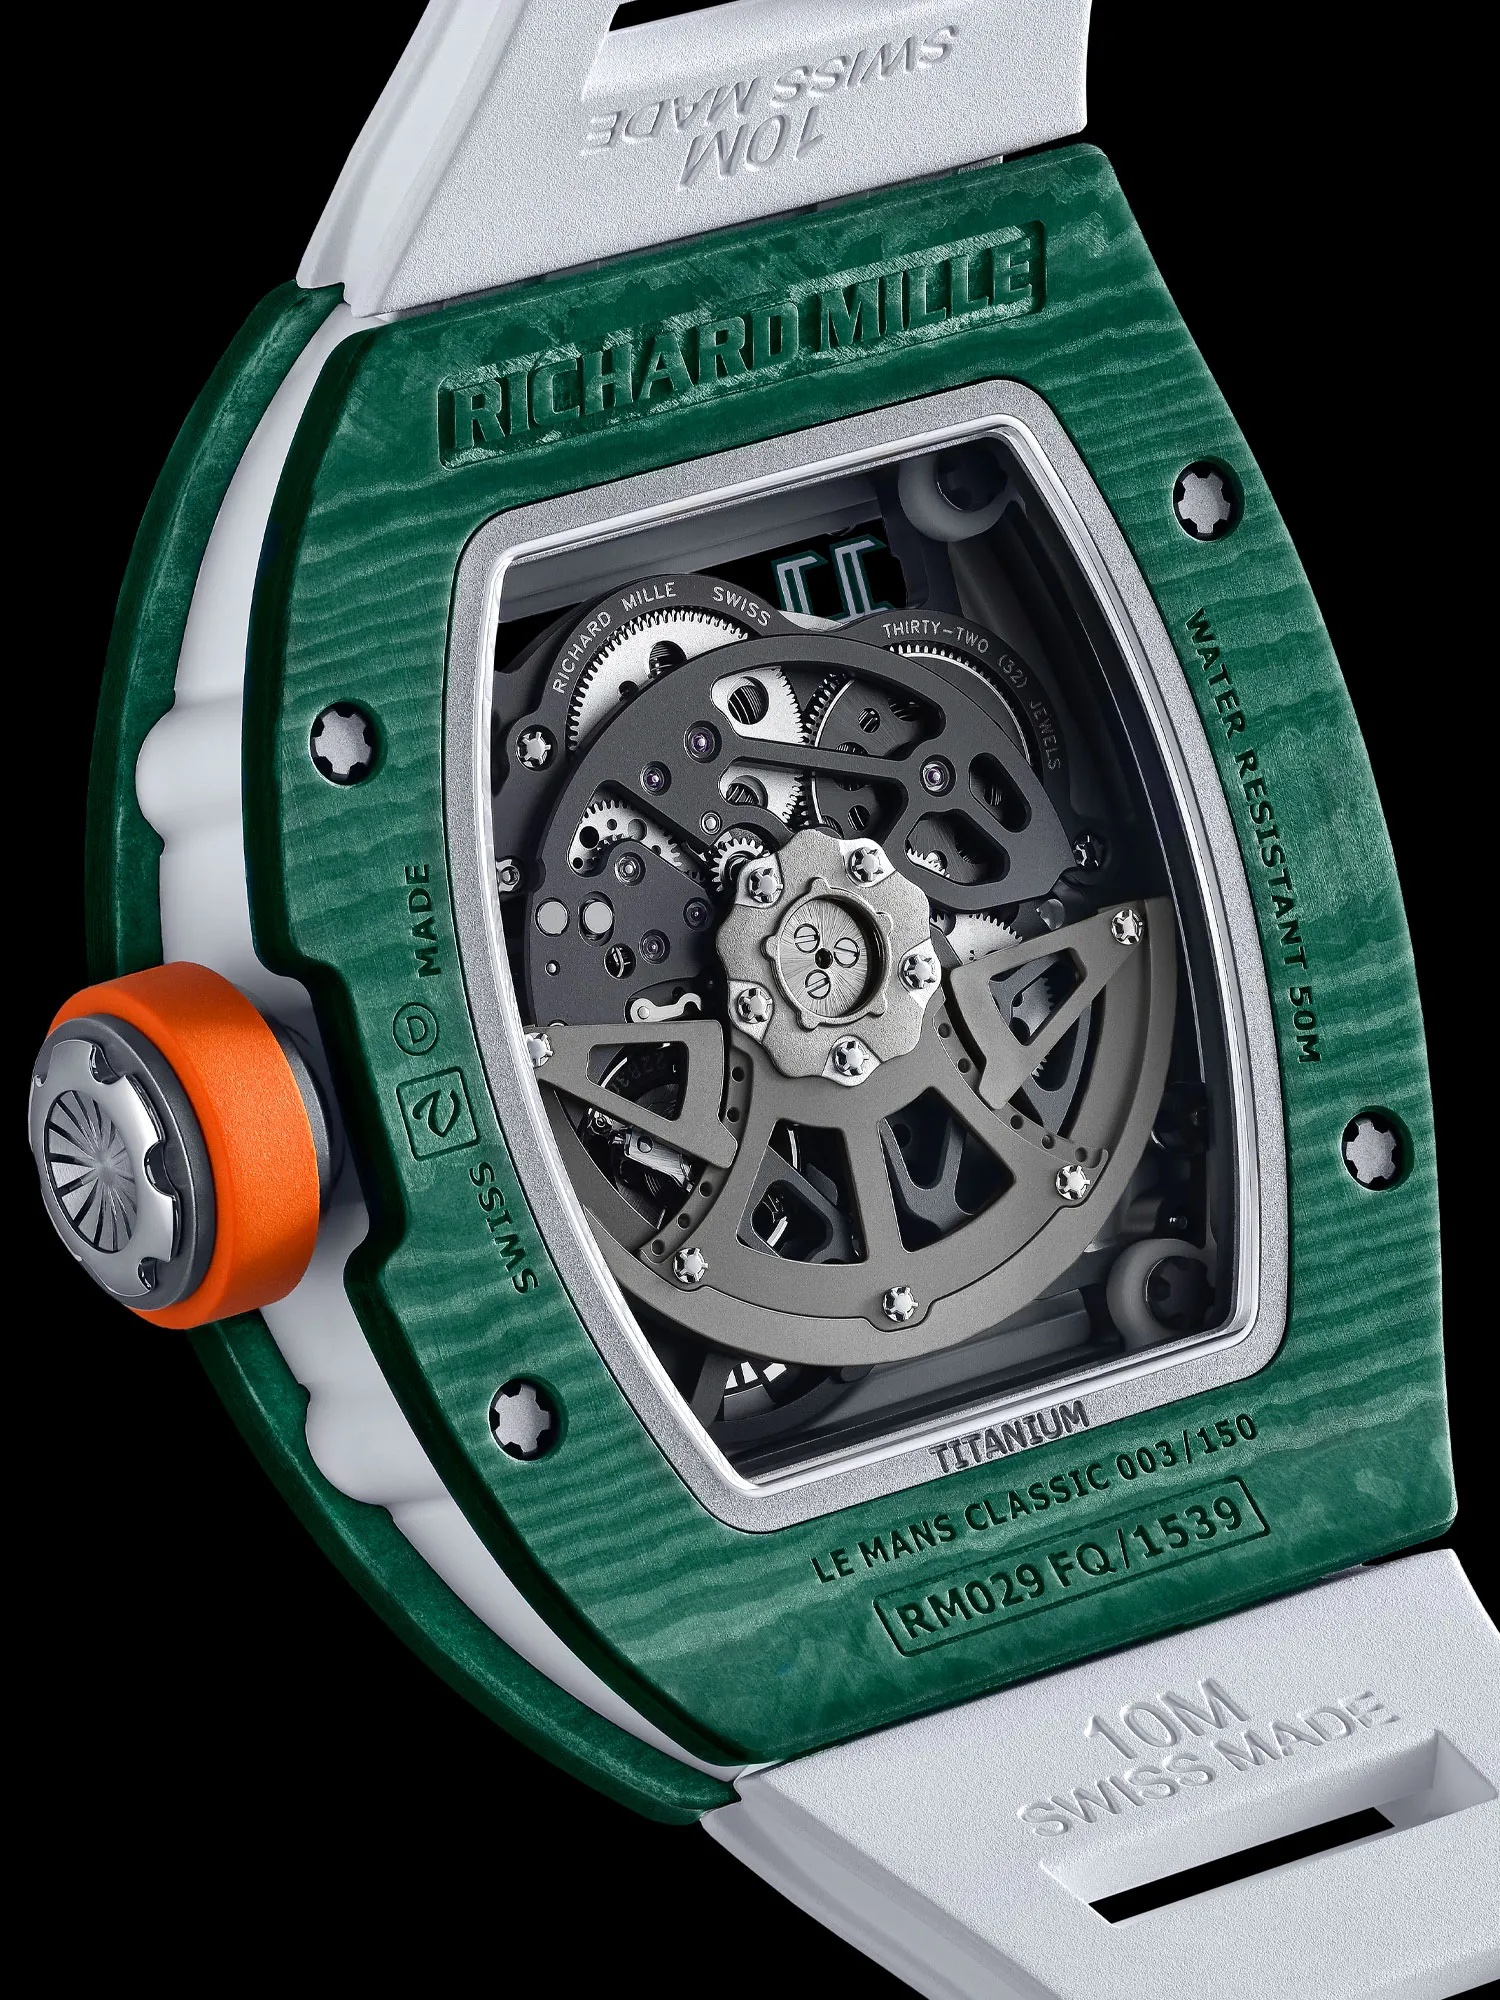 Richard Mille RM 029 Automatic Le Mans Classic Detalle trasera